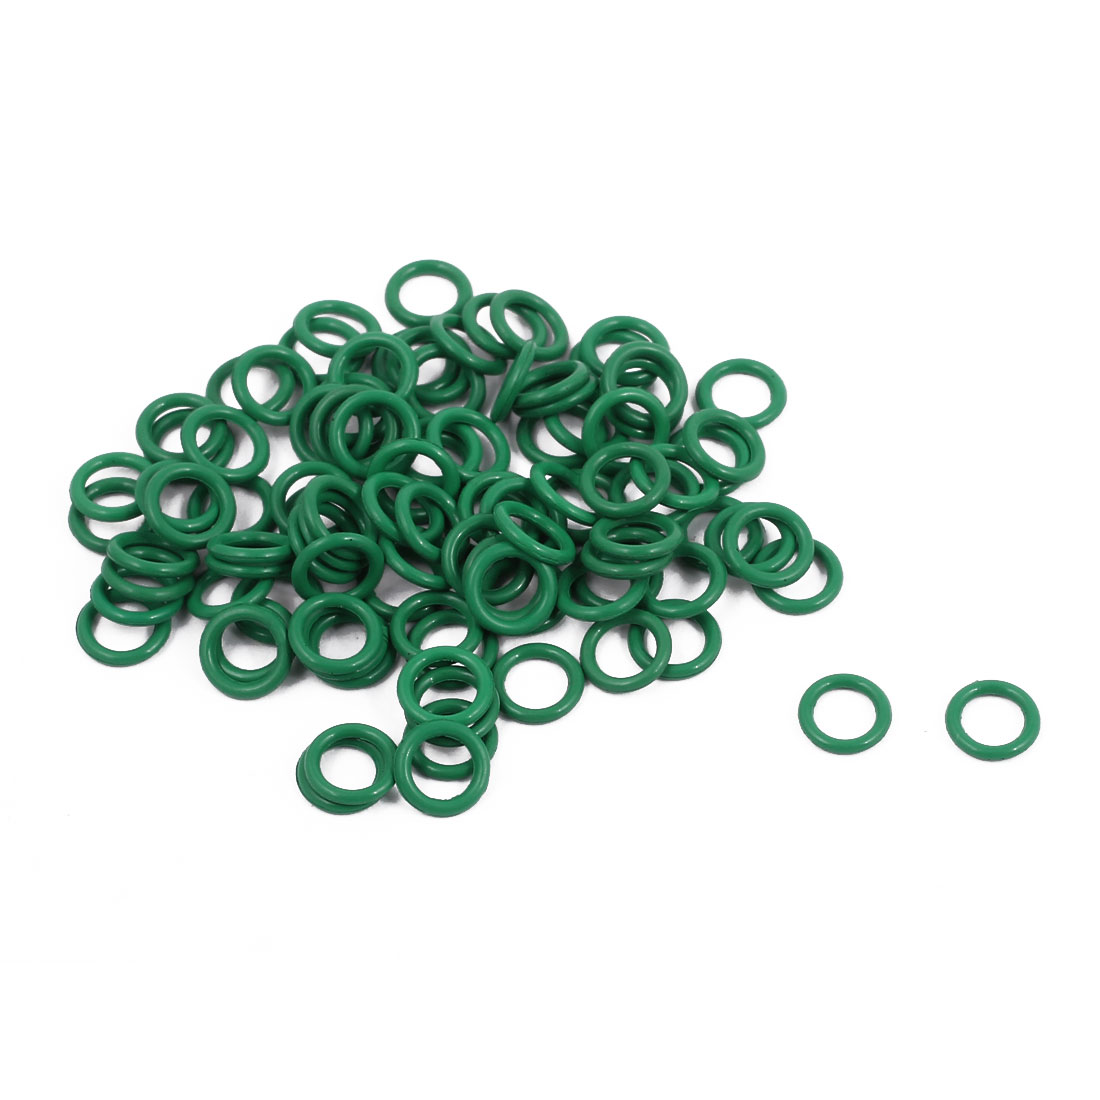 100Pcs 6mm x 1mm FKM O-rings Heat Resistant Sealing Ring Grommets Green